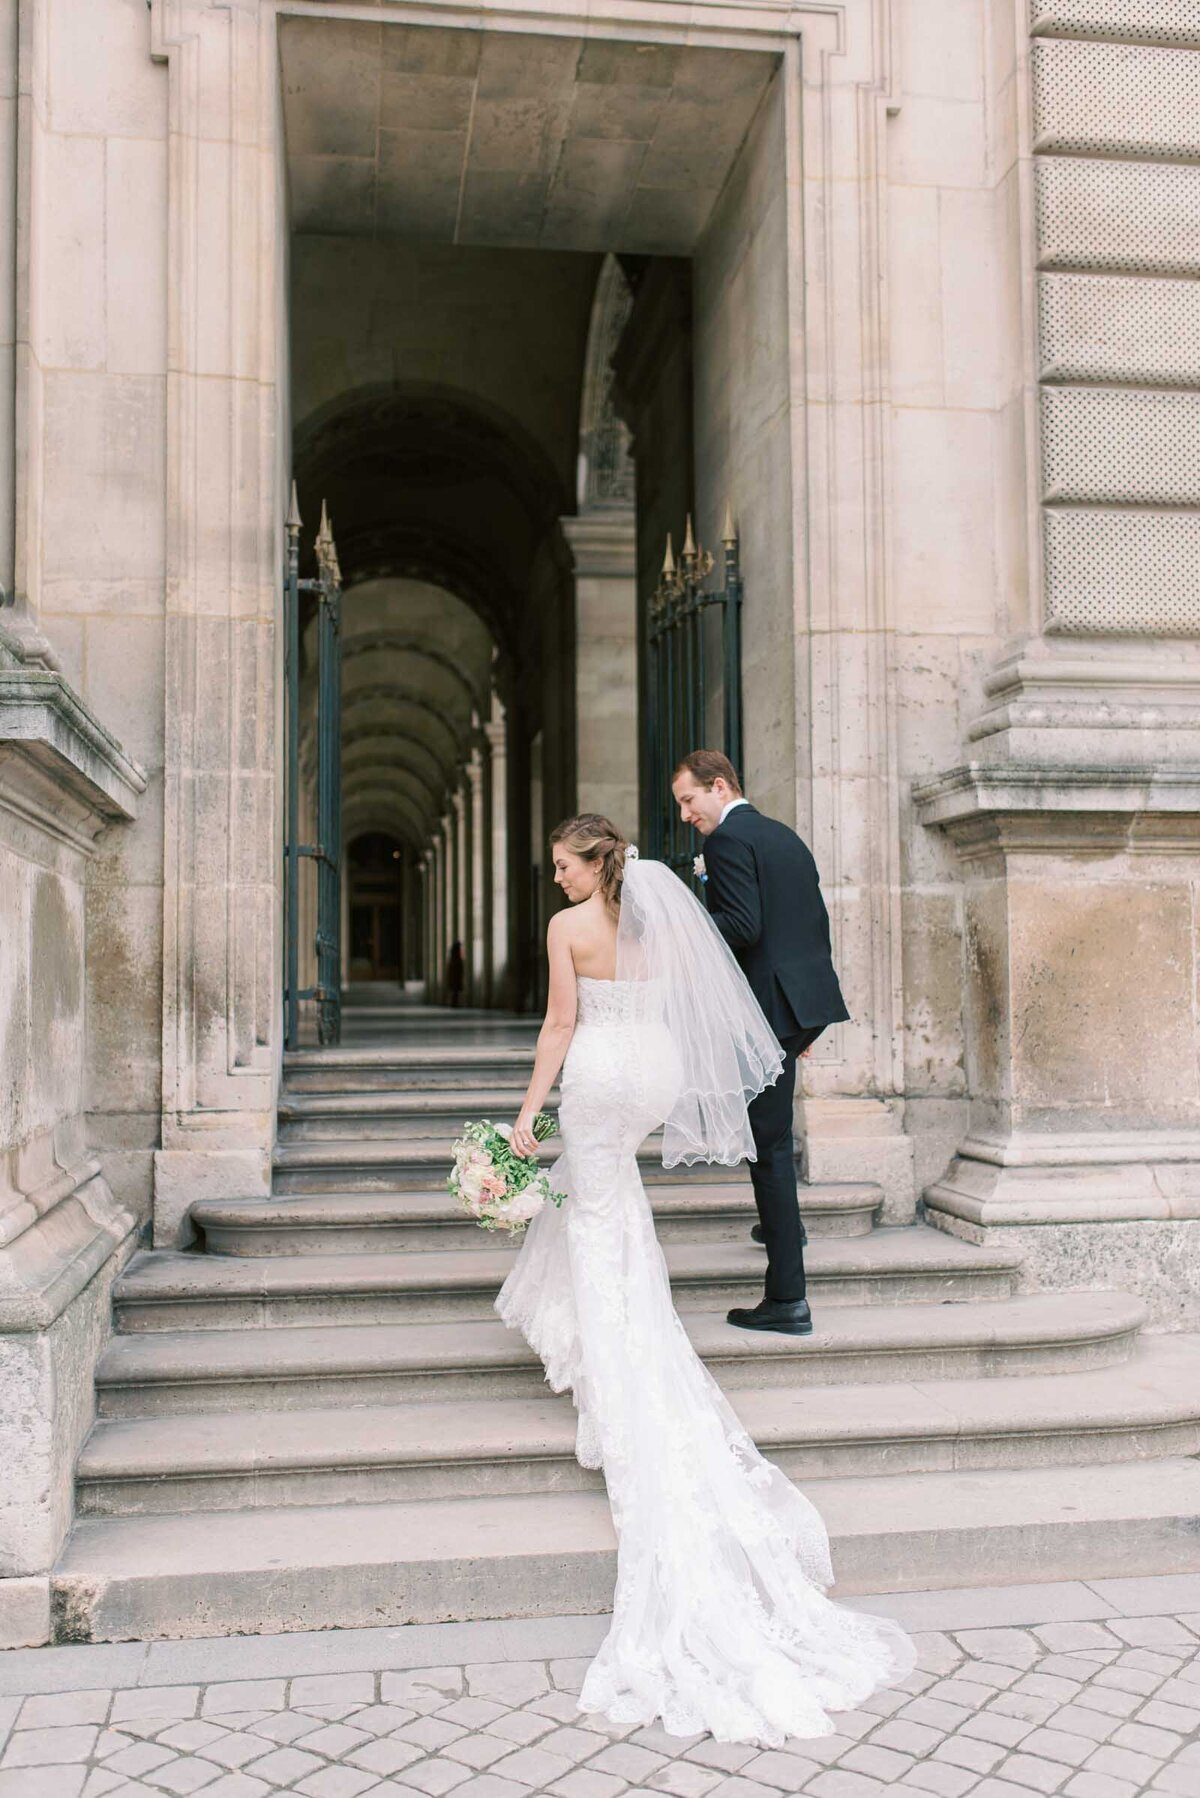 marcelaploskerphotography-paris_wedding-42